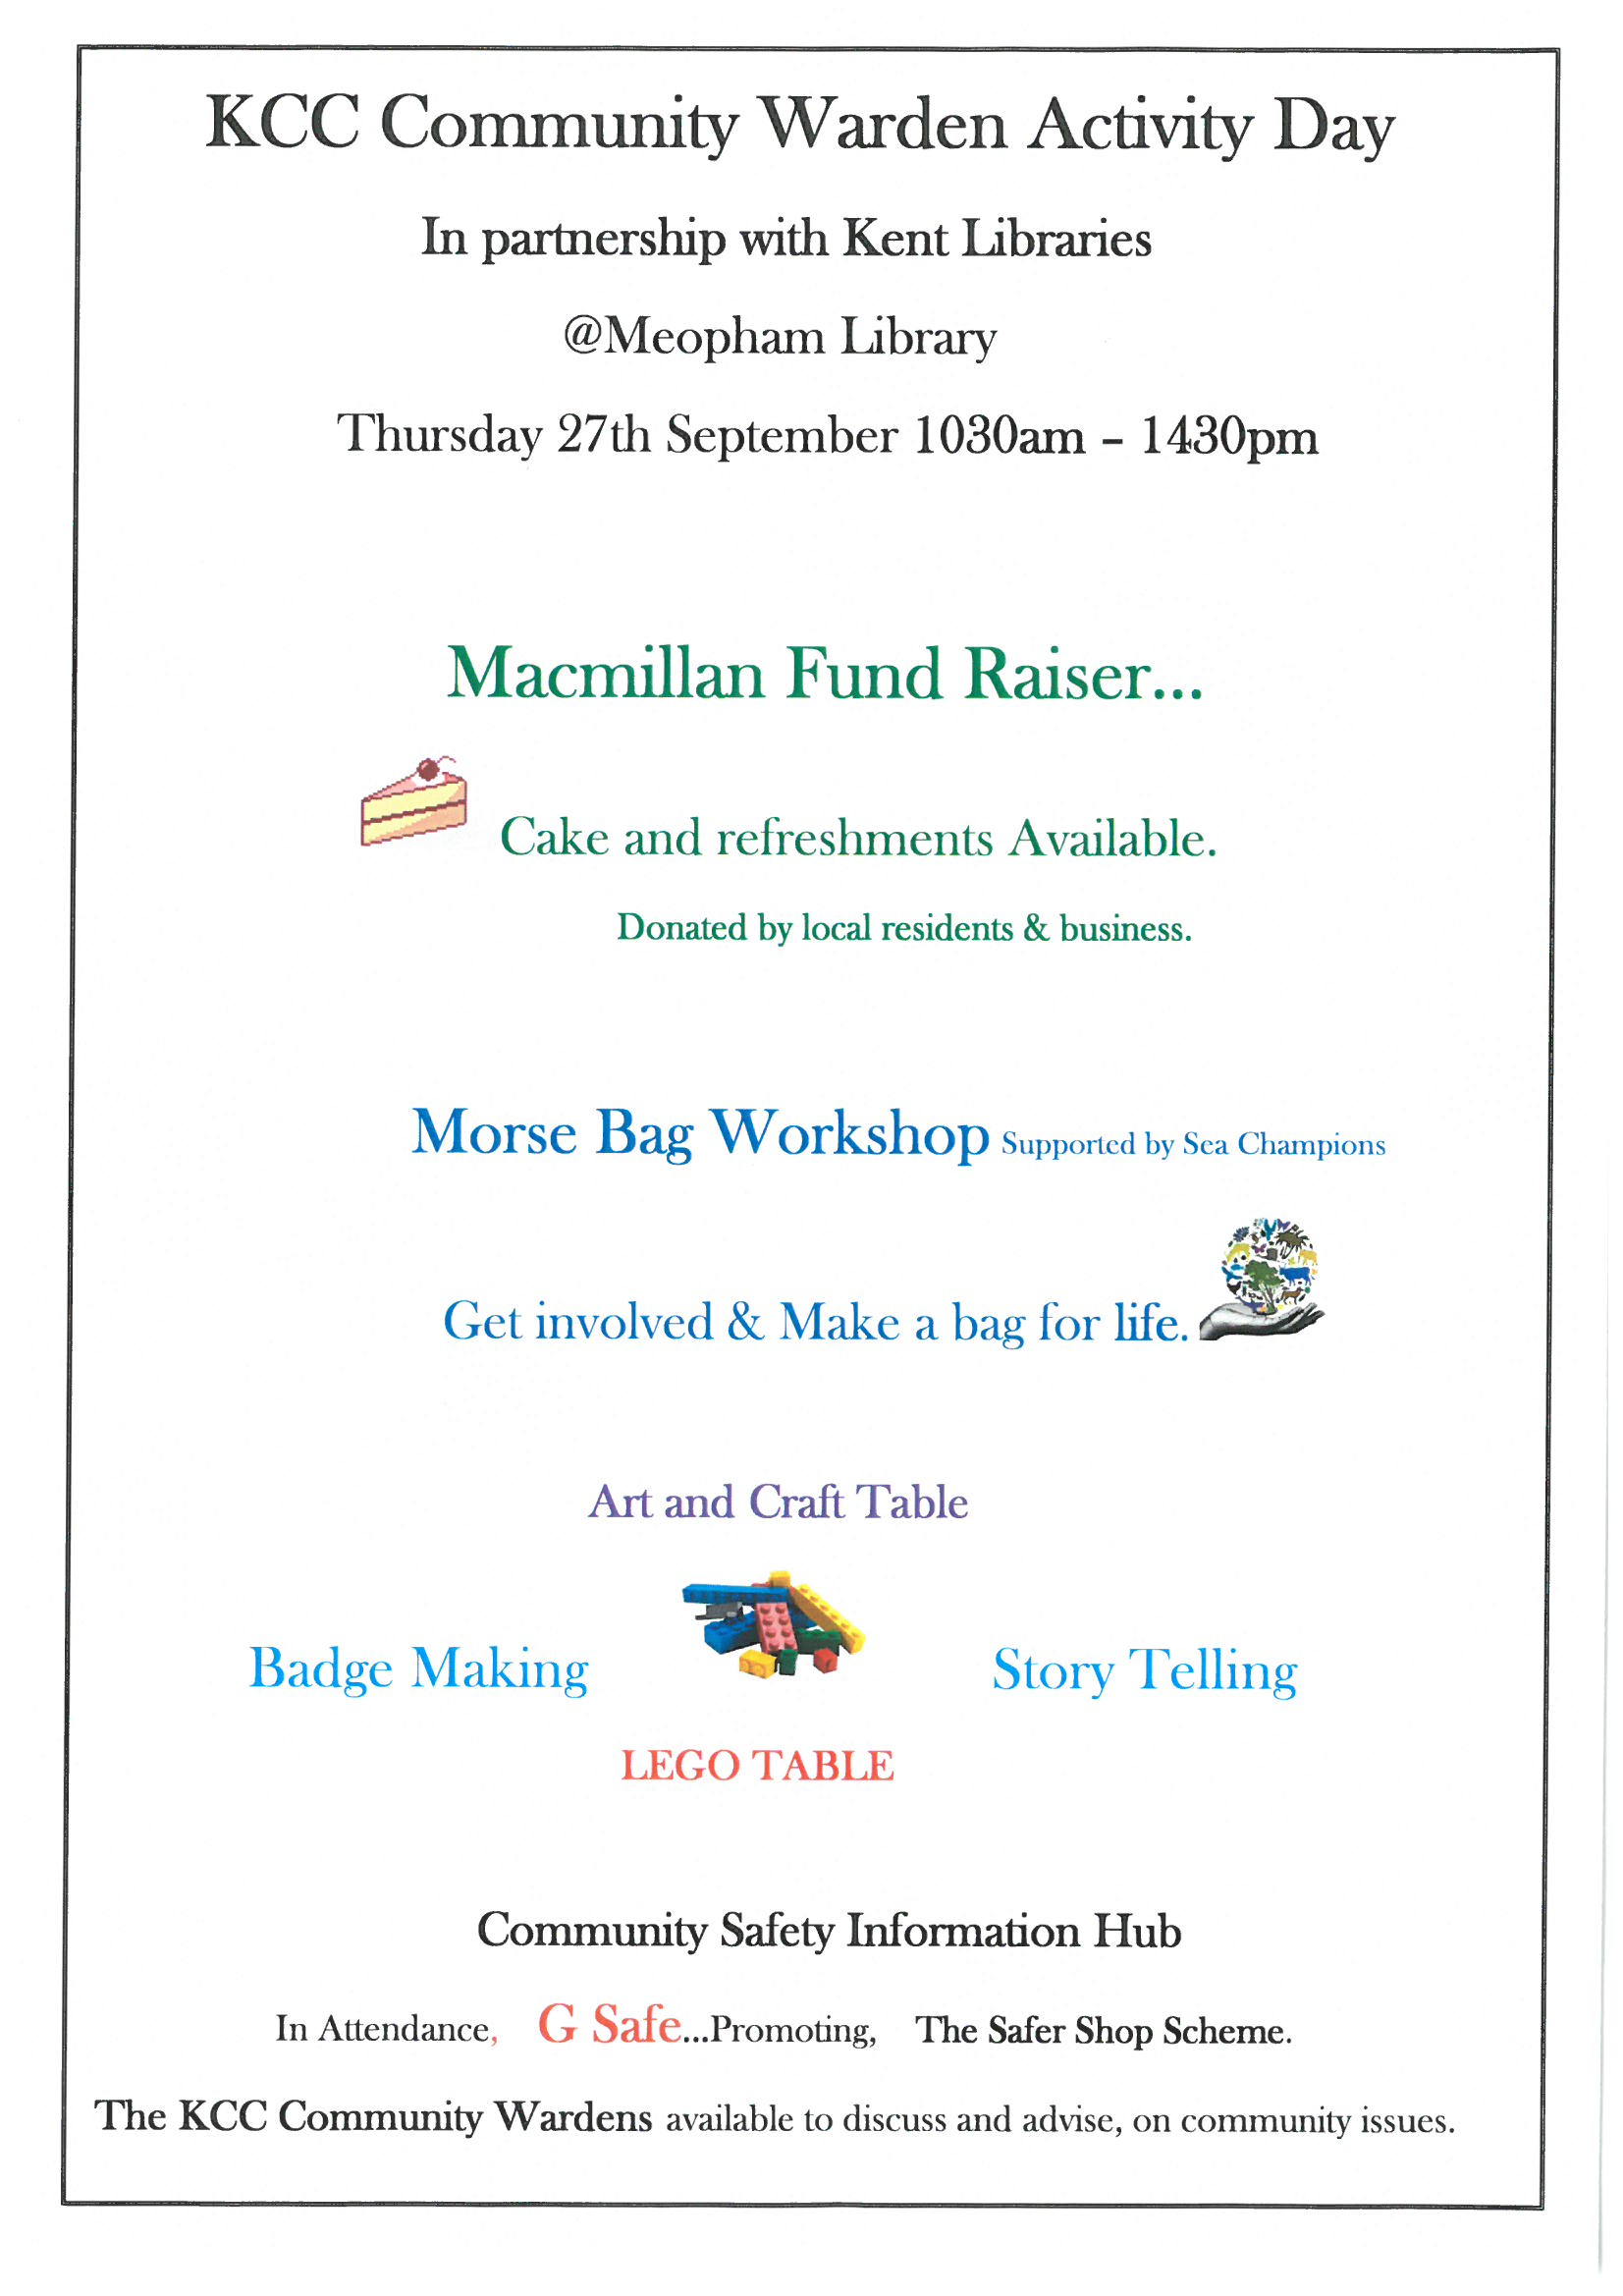 Meopham Library - Activity Day on 27 September 10:30am to 2